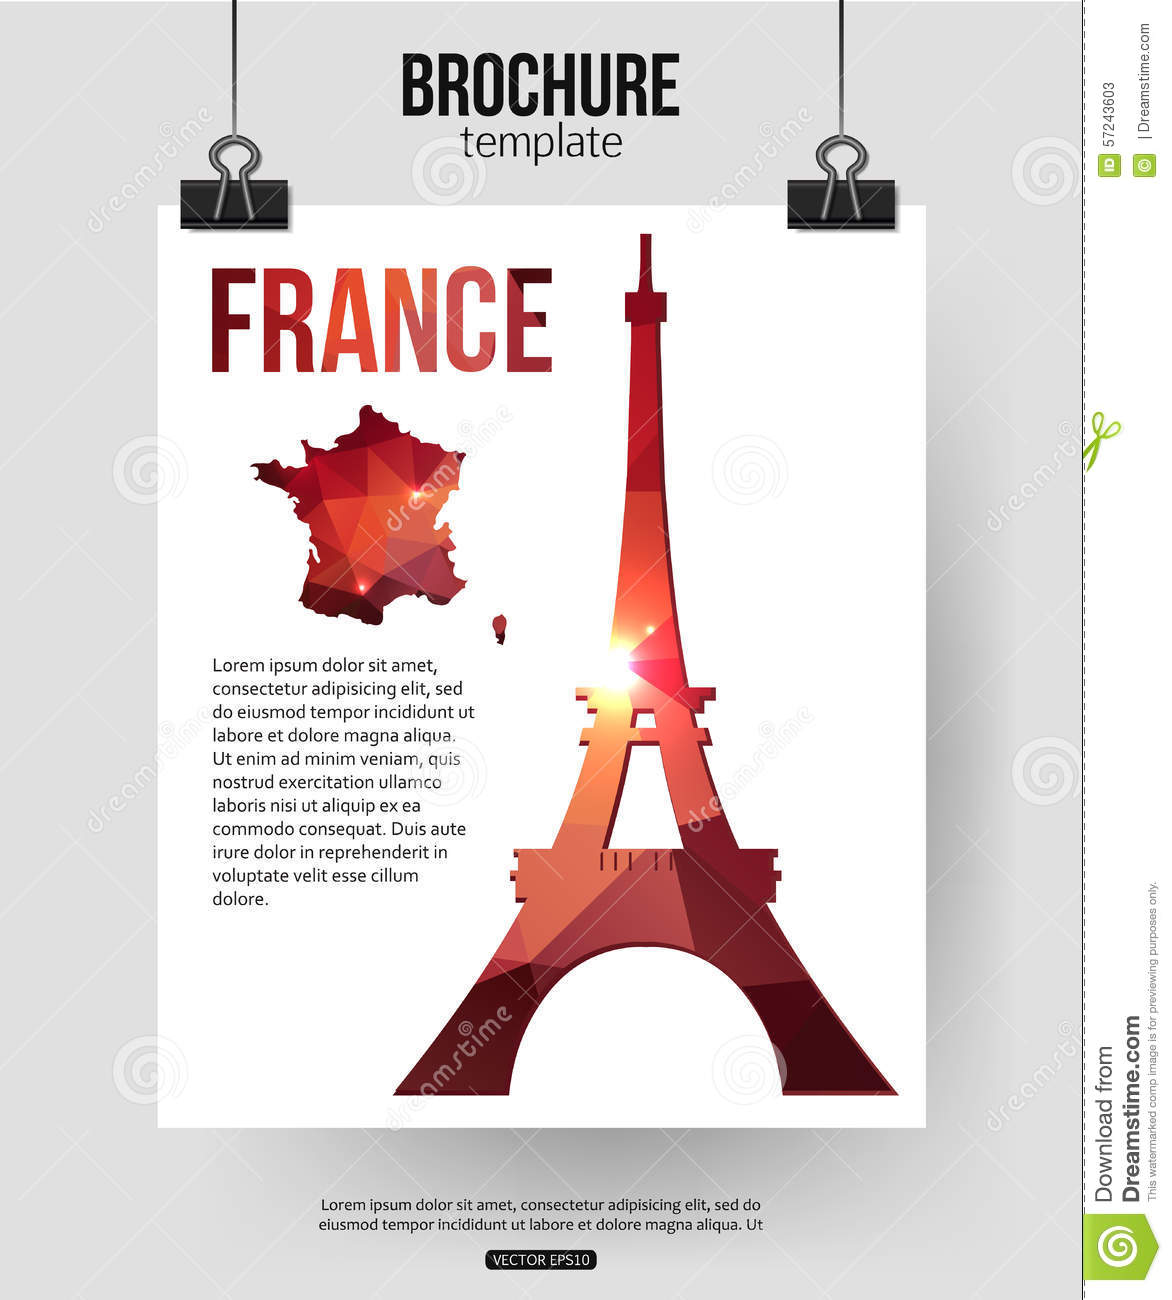 how to write a brochure about a place